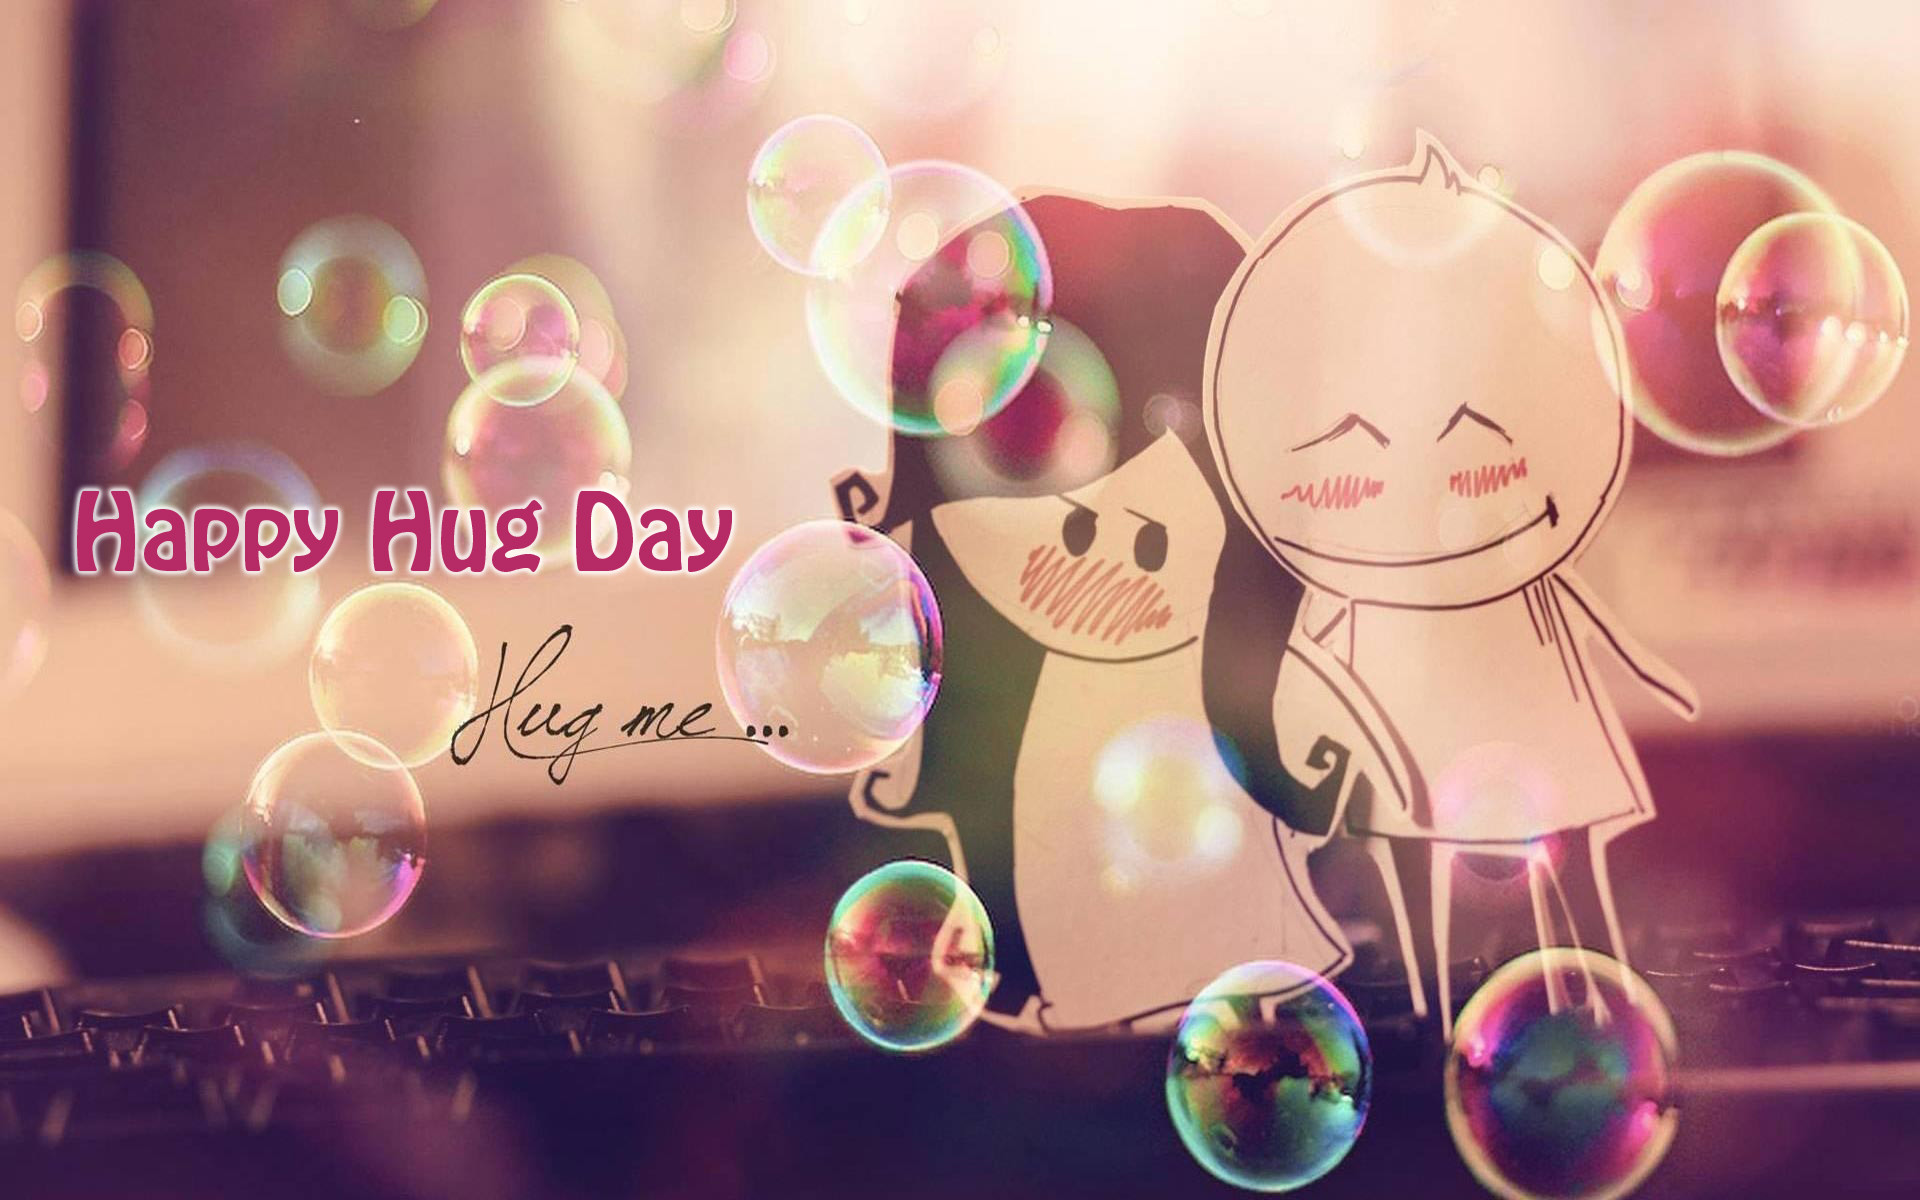 1920x1200 Wallpaper · Special collection for lovers couples .Send Cute hug Images to  boyfriend…